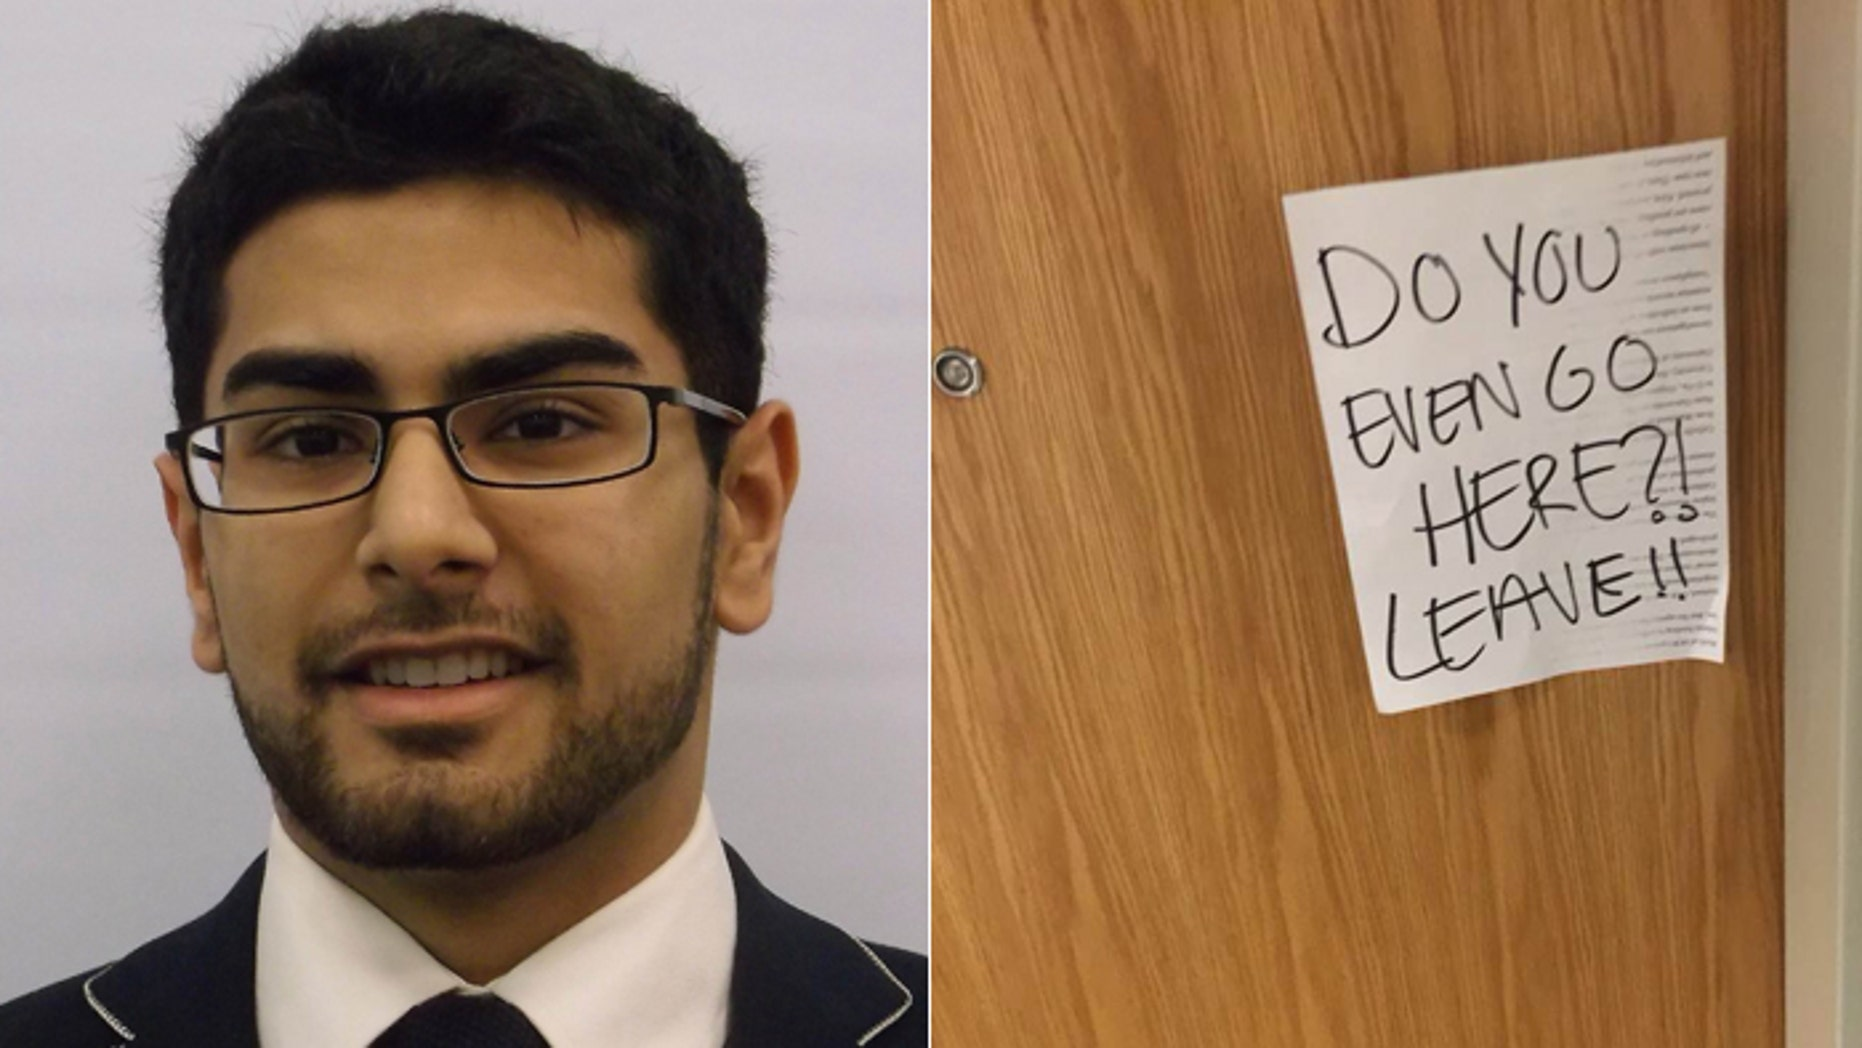 Of all the notes Omar Mahmoud said were affixed to his campus apartment, the one on the right is one of the tamest.